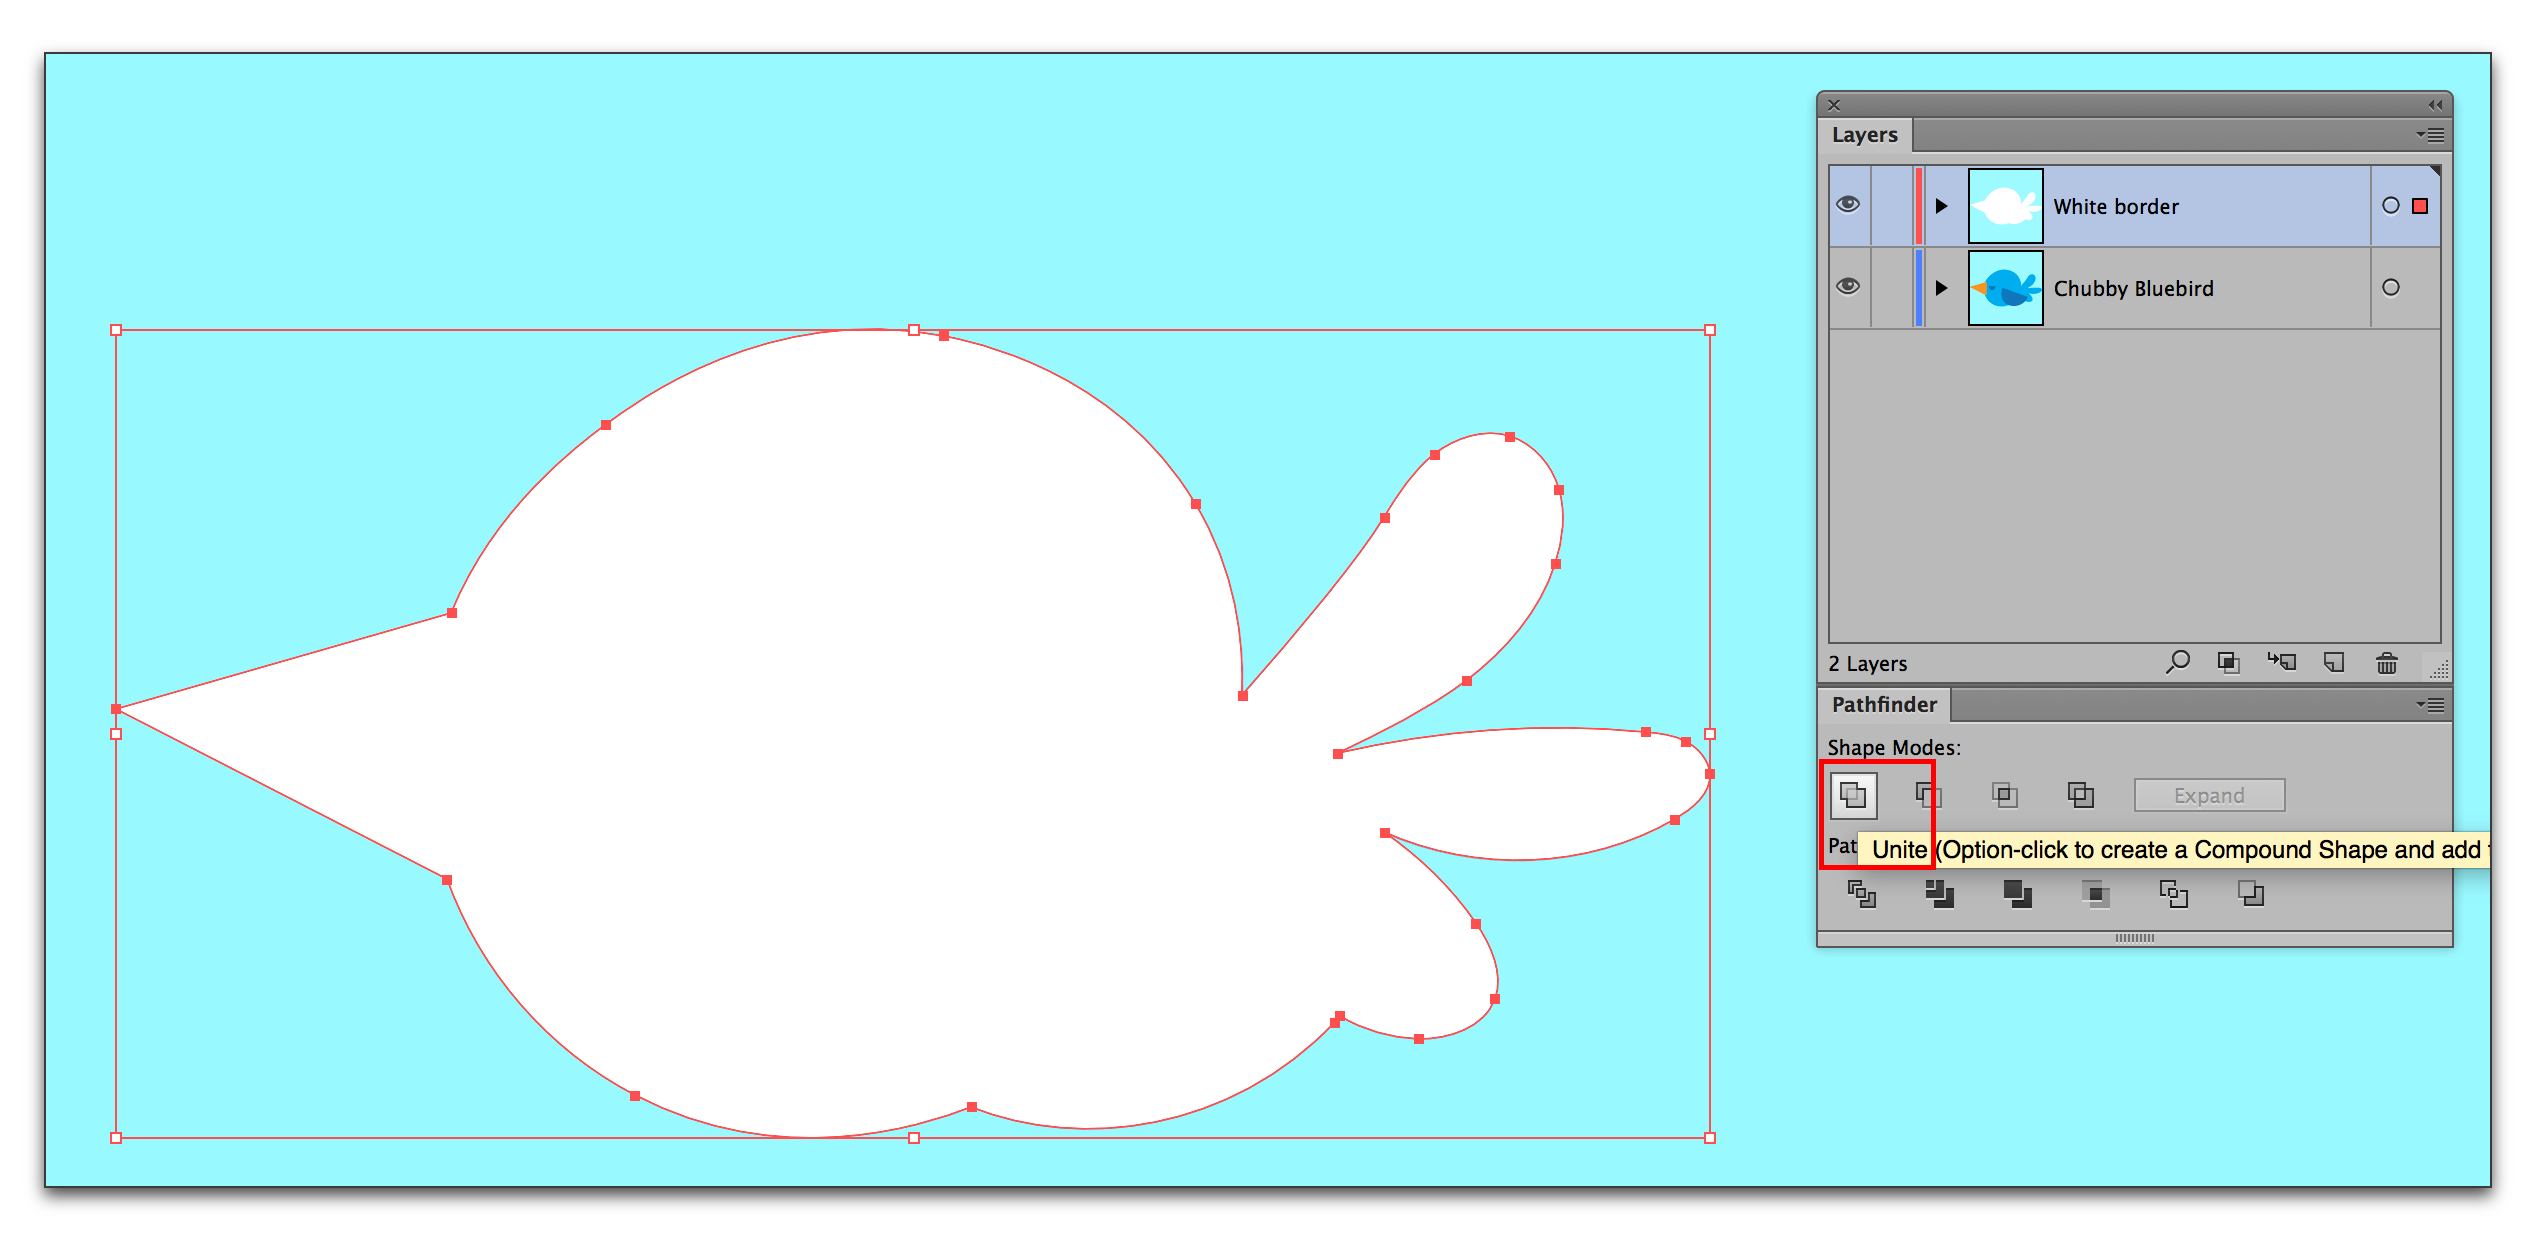 Adobe Illustrator CC 2015: Adding a white border for stickers and window clings